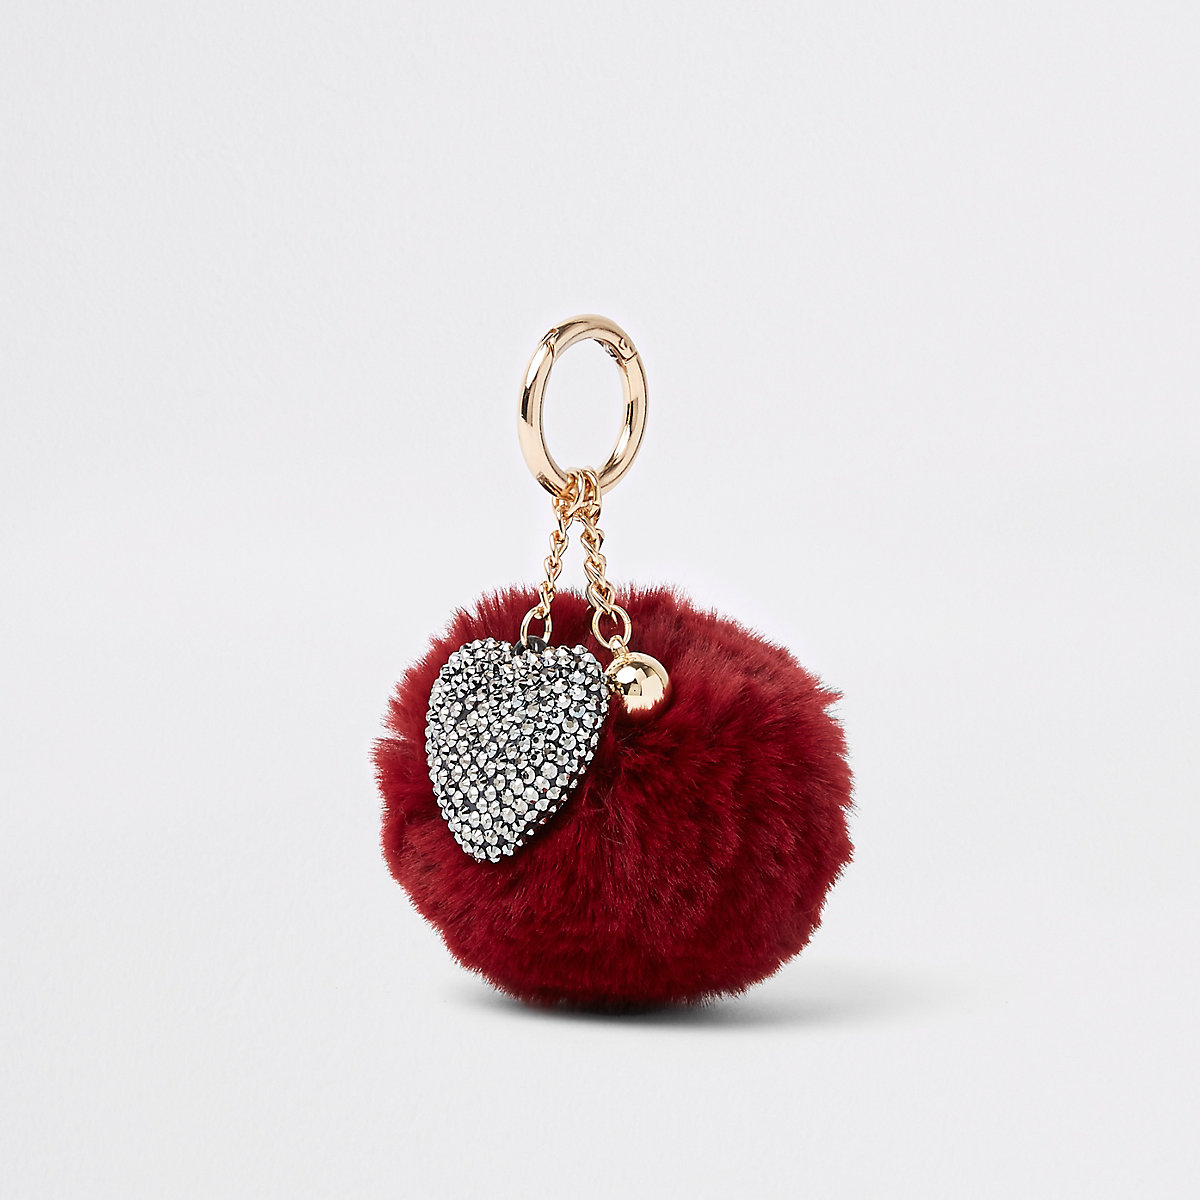 Dark red faux fur pom pom heart charm keyring